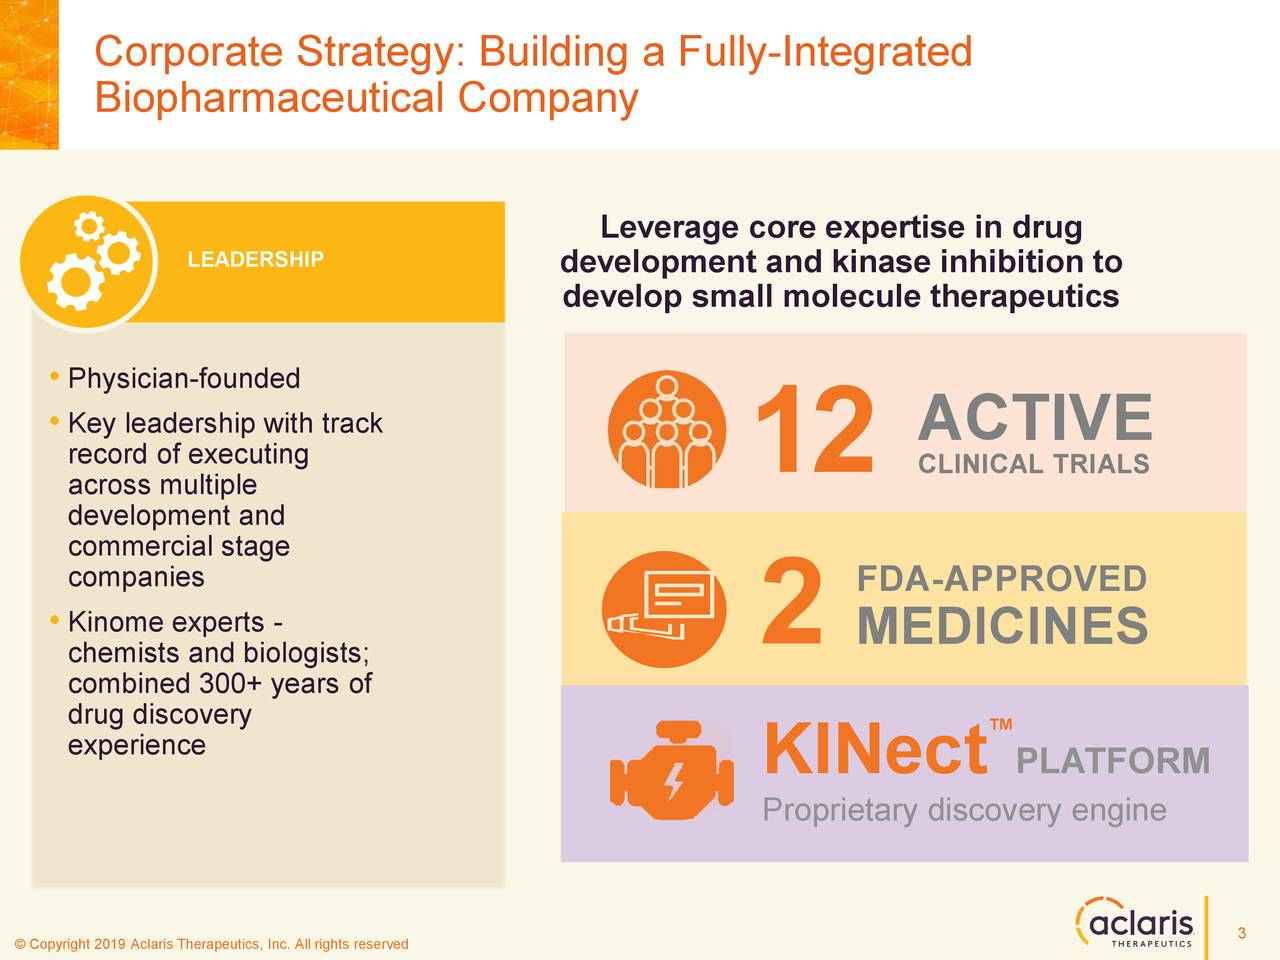 Biopharmaceutical Company Leverage core expertise in drug LEADERSHIP development and kinase inhibition to develop small molecule therapeutics •Physician-founded •Key leadership with track ACTIVE across multipleting 12 CLINICAL TRIALS development and commercial stage companies FDA-APPROVED •Kinome experts - 2 MEDICINES chemists and biologists; combined 300+ years of experiencevery ™ KINect PLATFORM Proprietary discovery engine 3